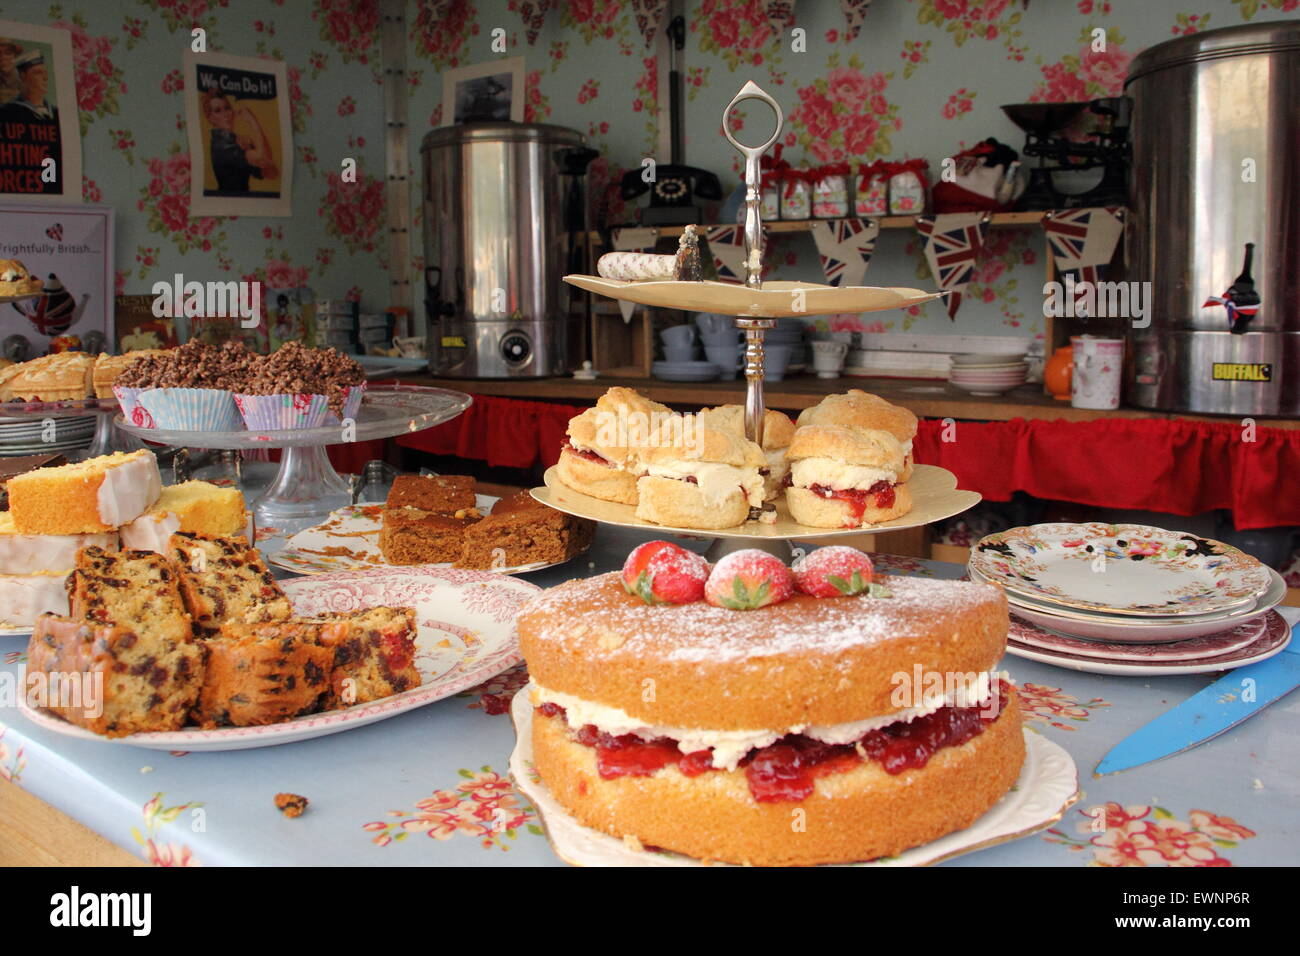 Tea and cakes at a pop-up tea room at a traditional British summer festival, Bakewell, Peak District, Derbyshire - Stock Image